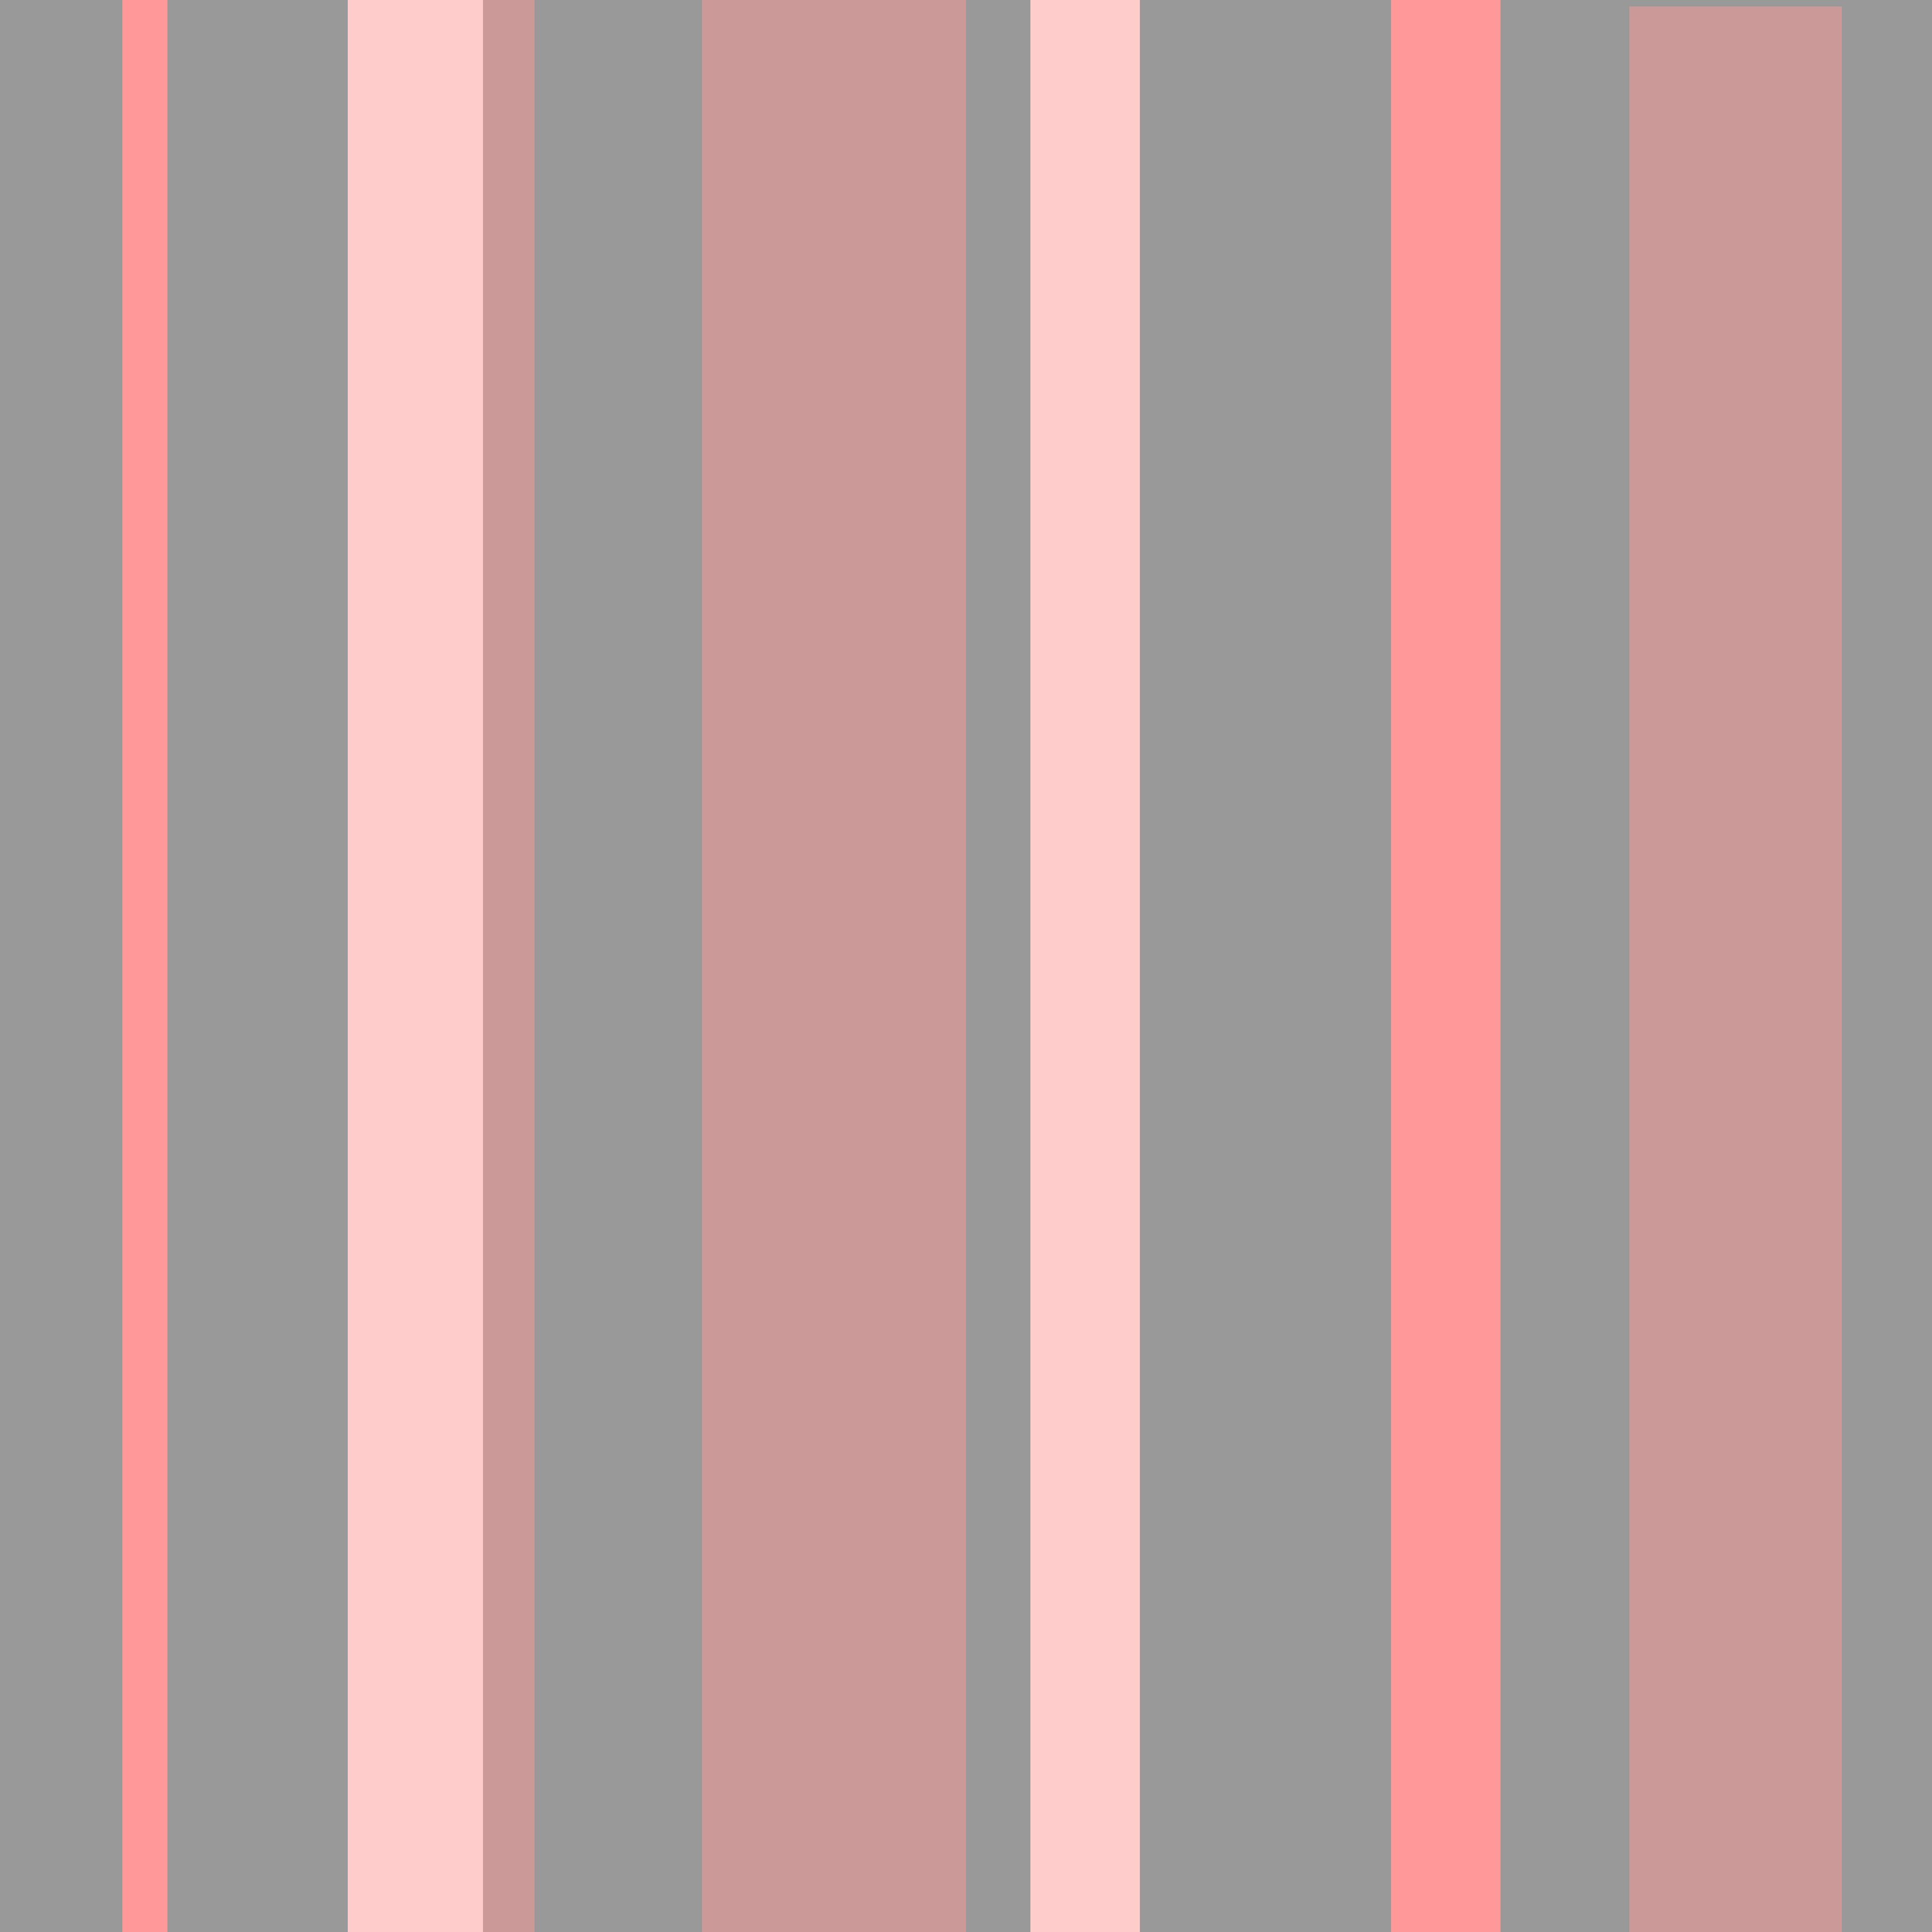 Wall paper pink and grey stripes | My digital papers | Pinterest